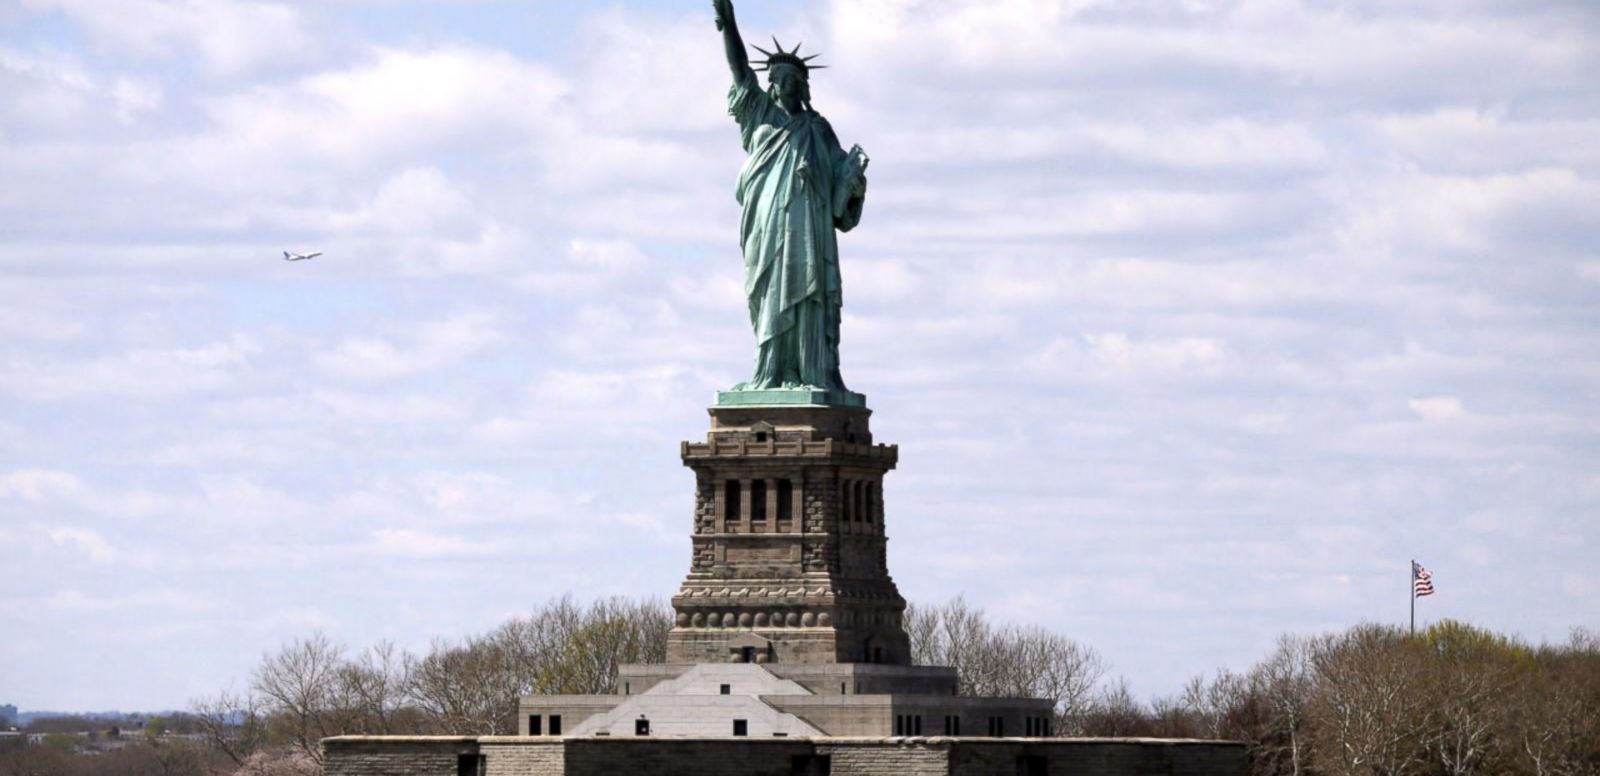 VIDEO: Index: Bomb Scare at Statue of Liberty